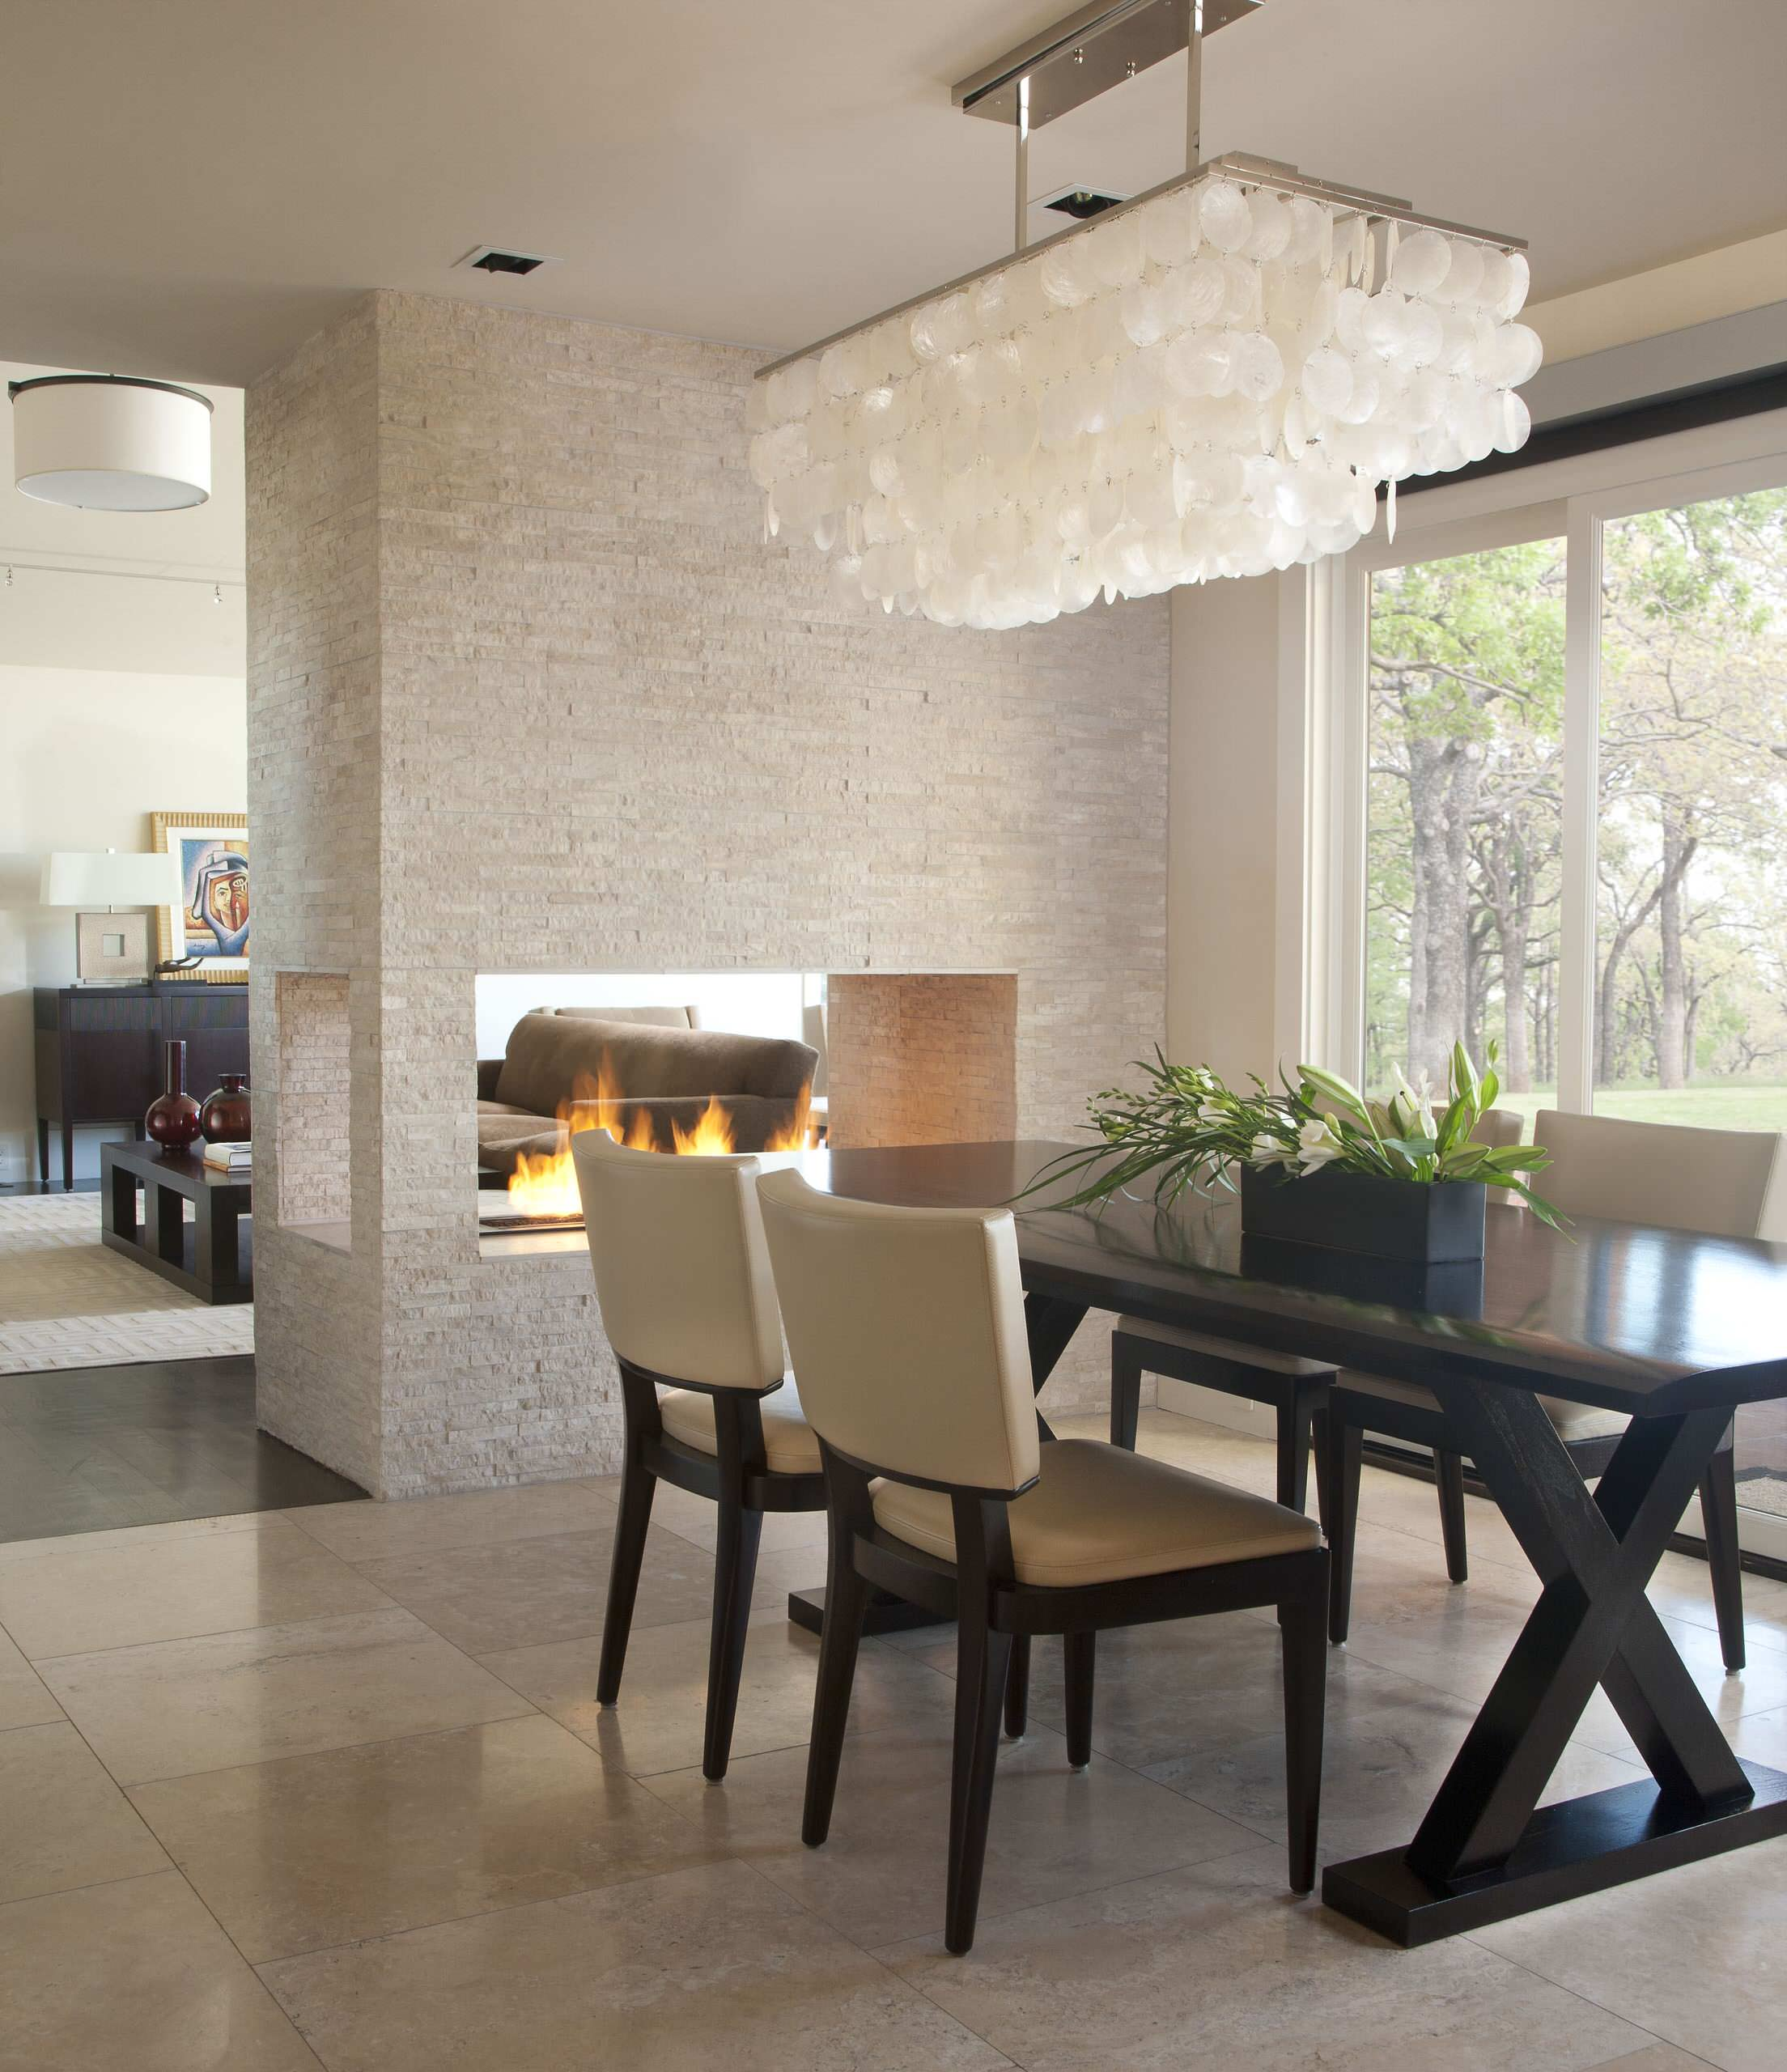 75 Beautiful Contemporary Dining Room Pictures Ideas April 2021 Houzz